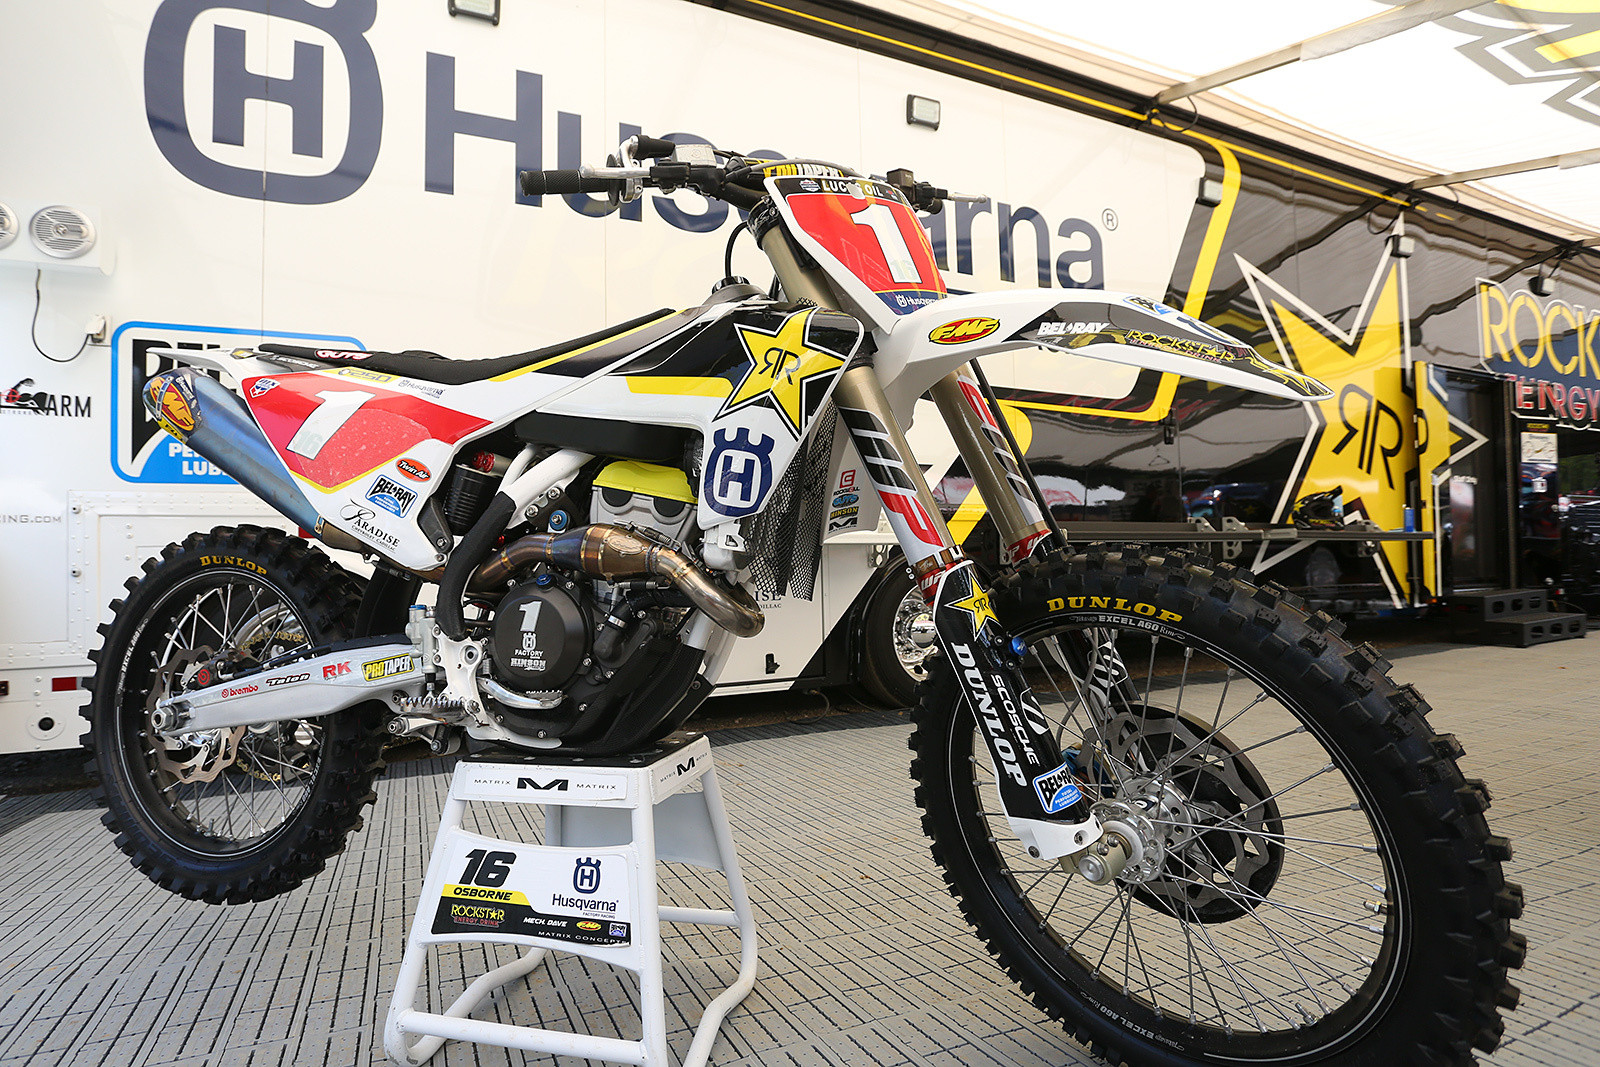 After wrapping up the 250 championship at Budds Creek, the Rockstar Energy Racing Husqvarna team showed up for press day at Ironman Raceway with a set of number one plates for Zach Osborne's bike. While he couldn't technically ride with them during Saturday's racing (Cooper Webb still was the defending champion until after the season ended, even though he's now in the 450 class), it was cool to see him be able to rock them during the one-off session. We'll see him defend his SX title with a 1E plate, and he'll be using whatever his permanent number is when he moves up to the 450 class next summer.